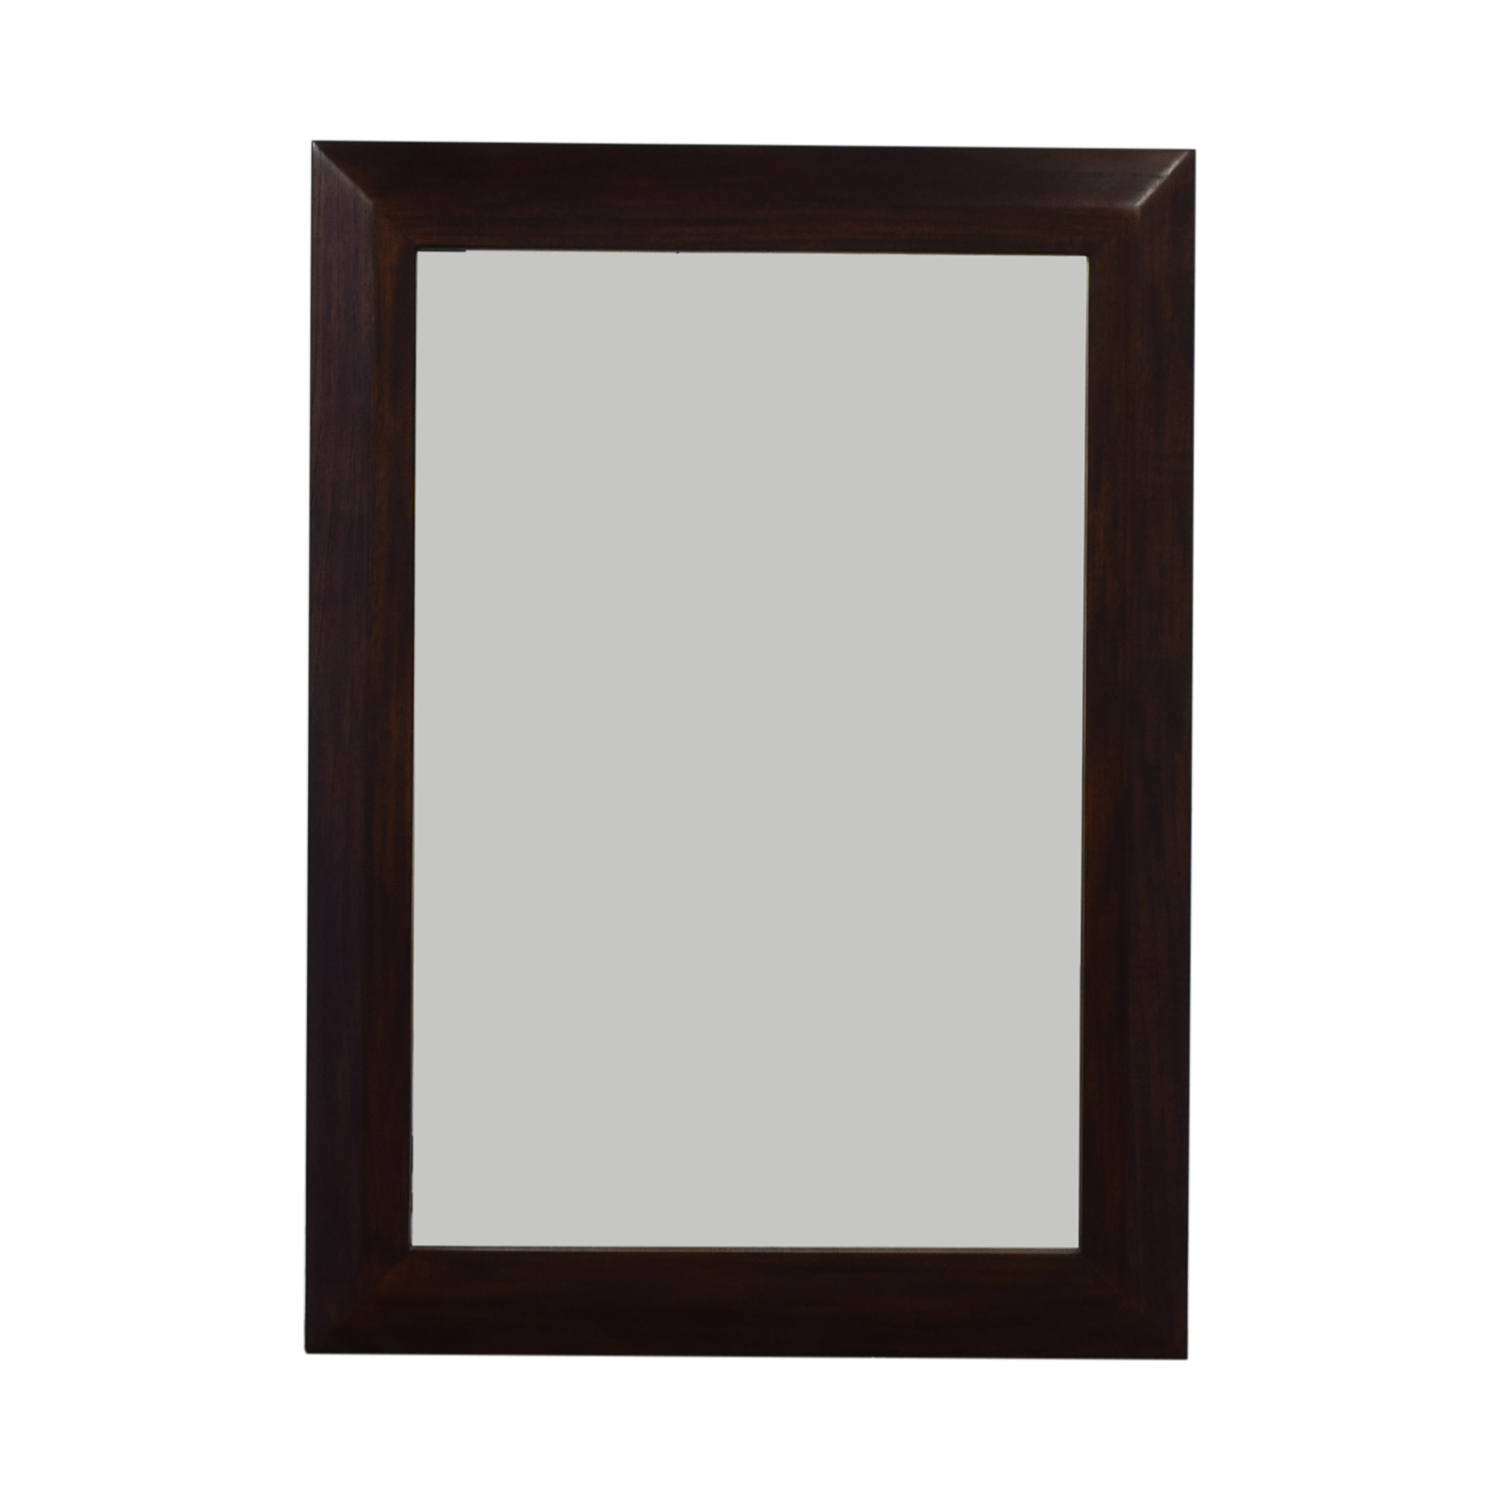 shop Crate & Barrel Wooden Framed Mirror Crate & Barrel